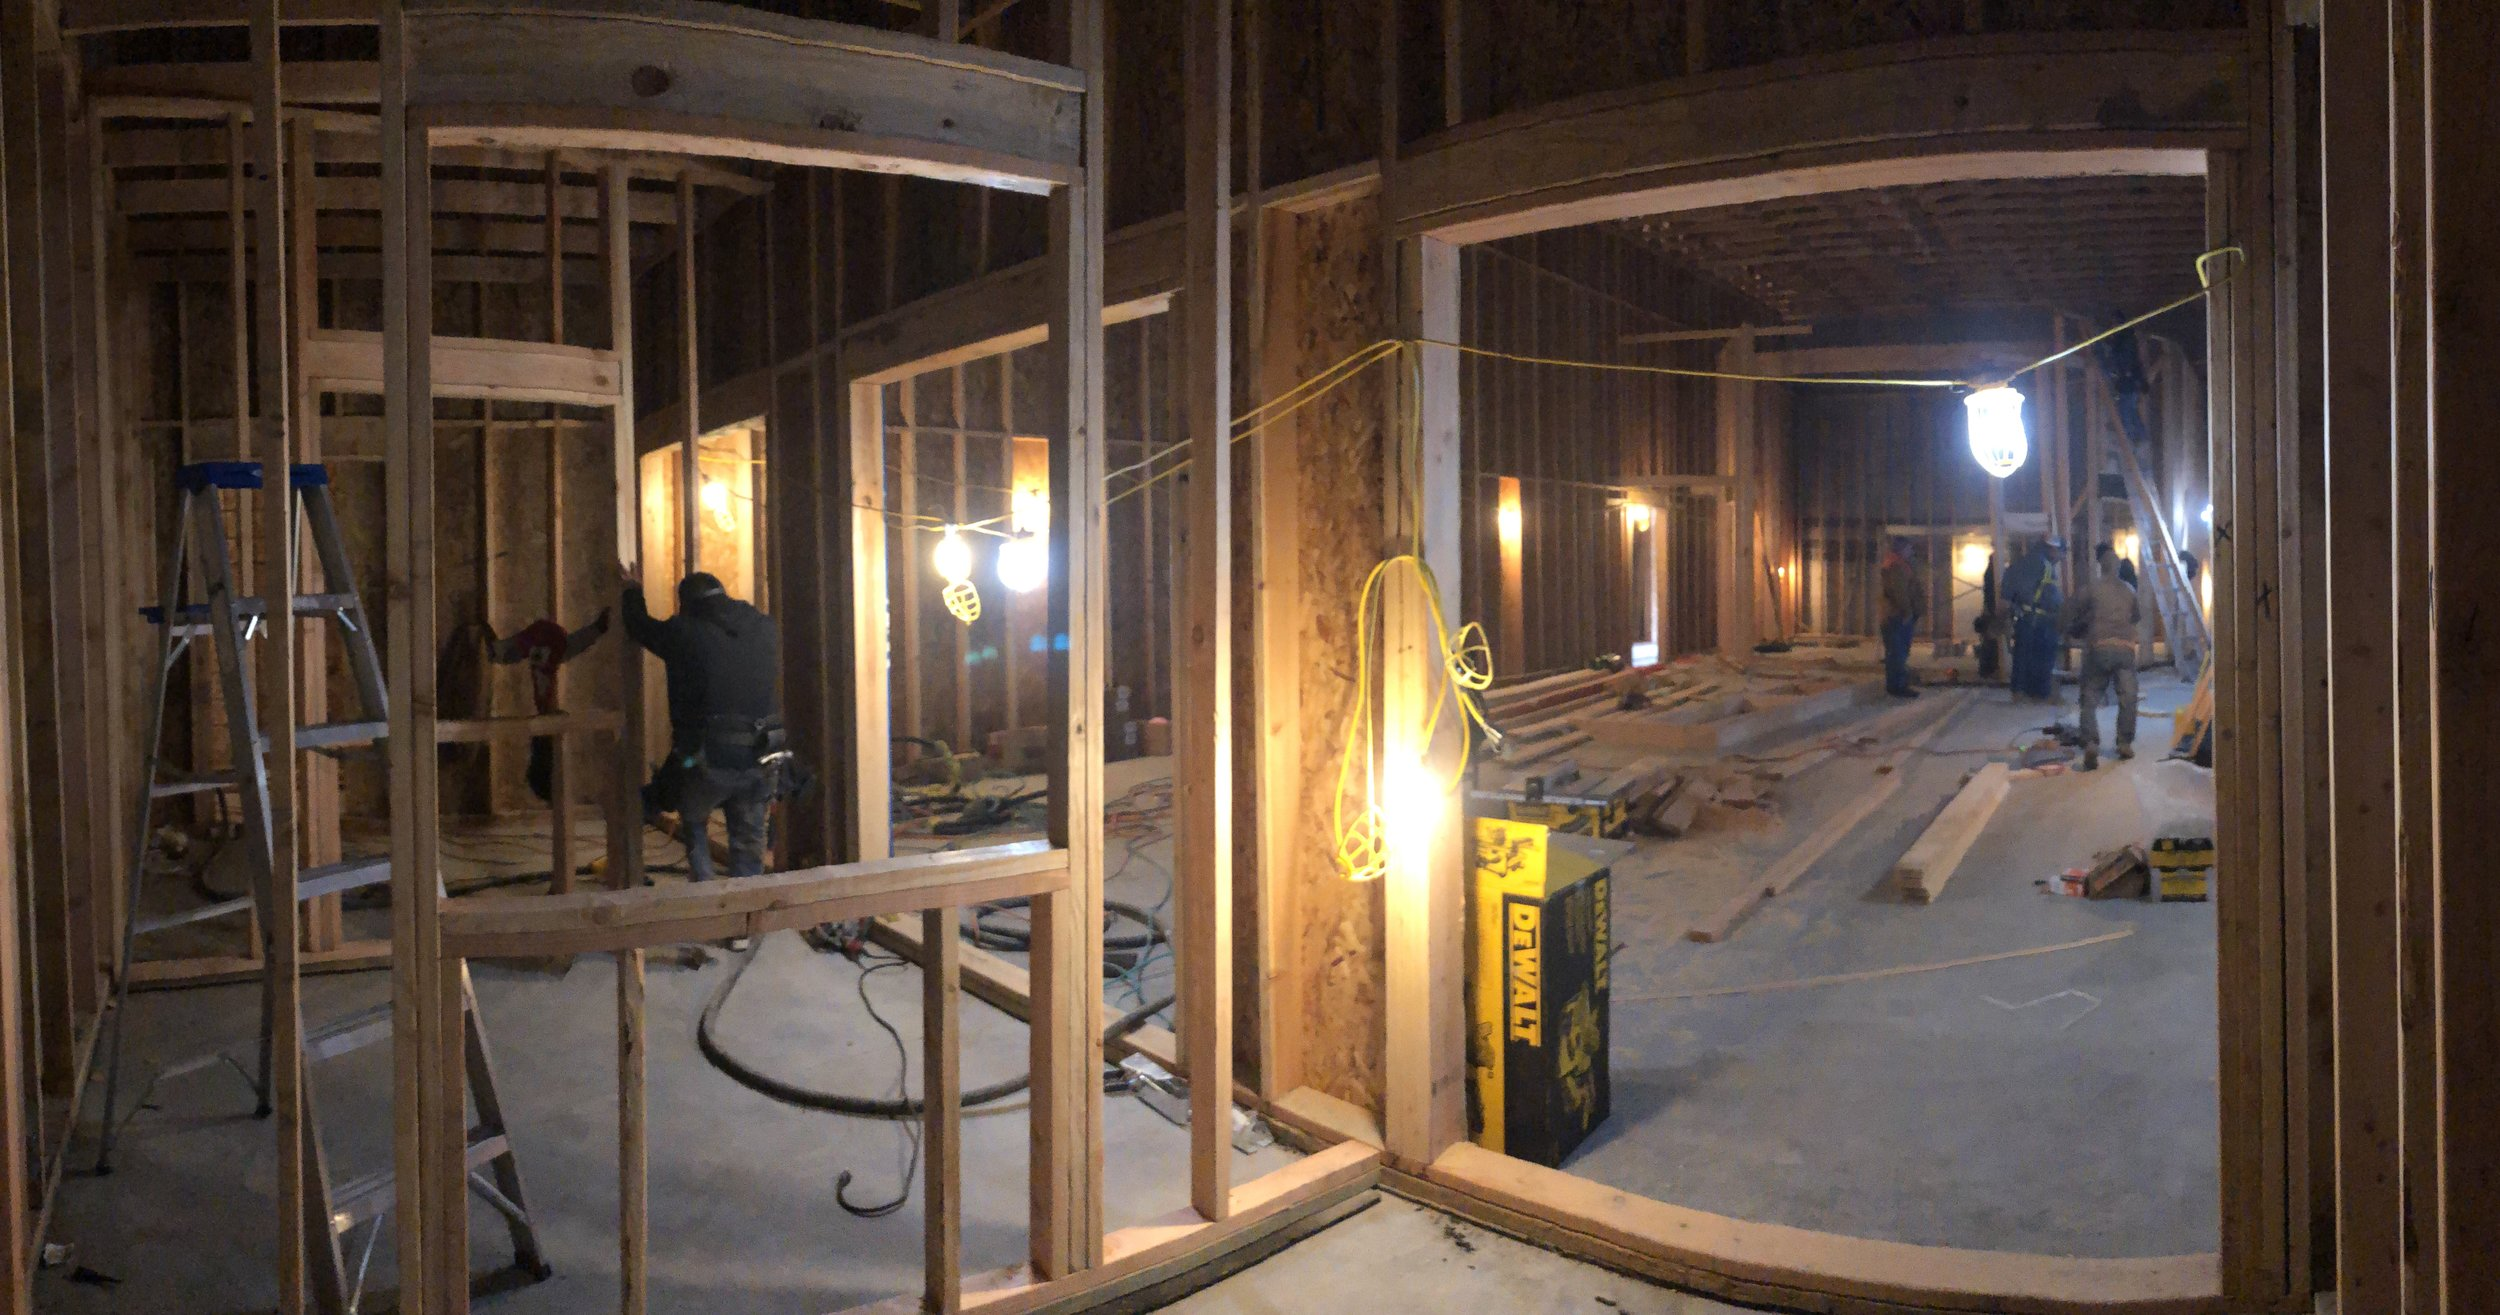 Looking out of one of the isolation booths into the other booths (left) and into tracking room 1 (right).